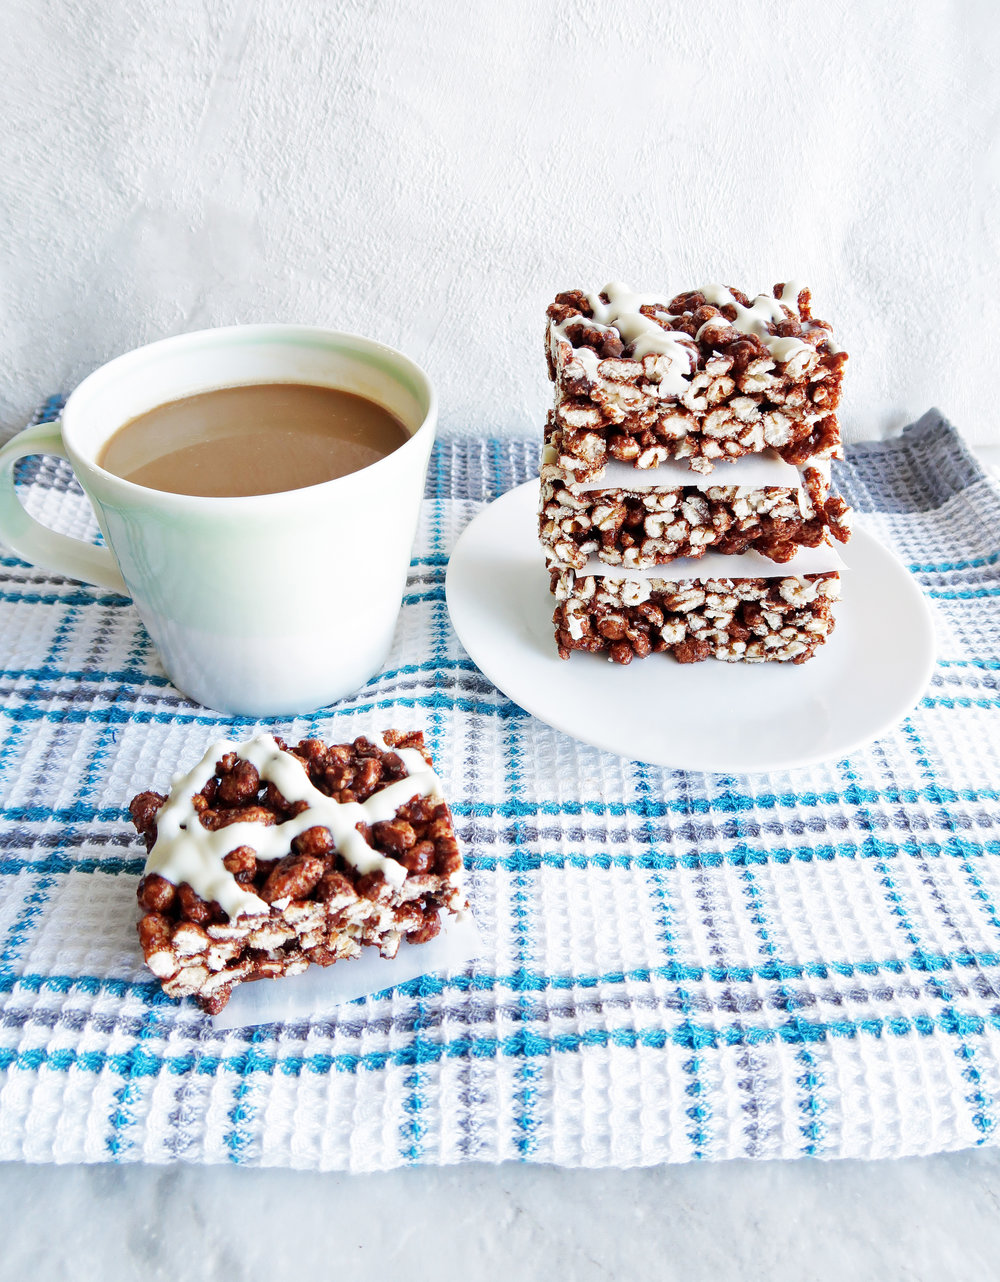 Chocolate Marshmallow Puffed Wheat Squares: A quick and easy no-bake dessert. www.yayforfood.com